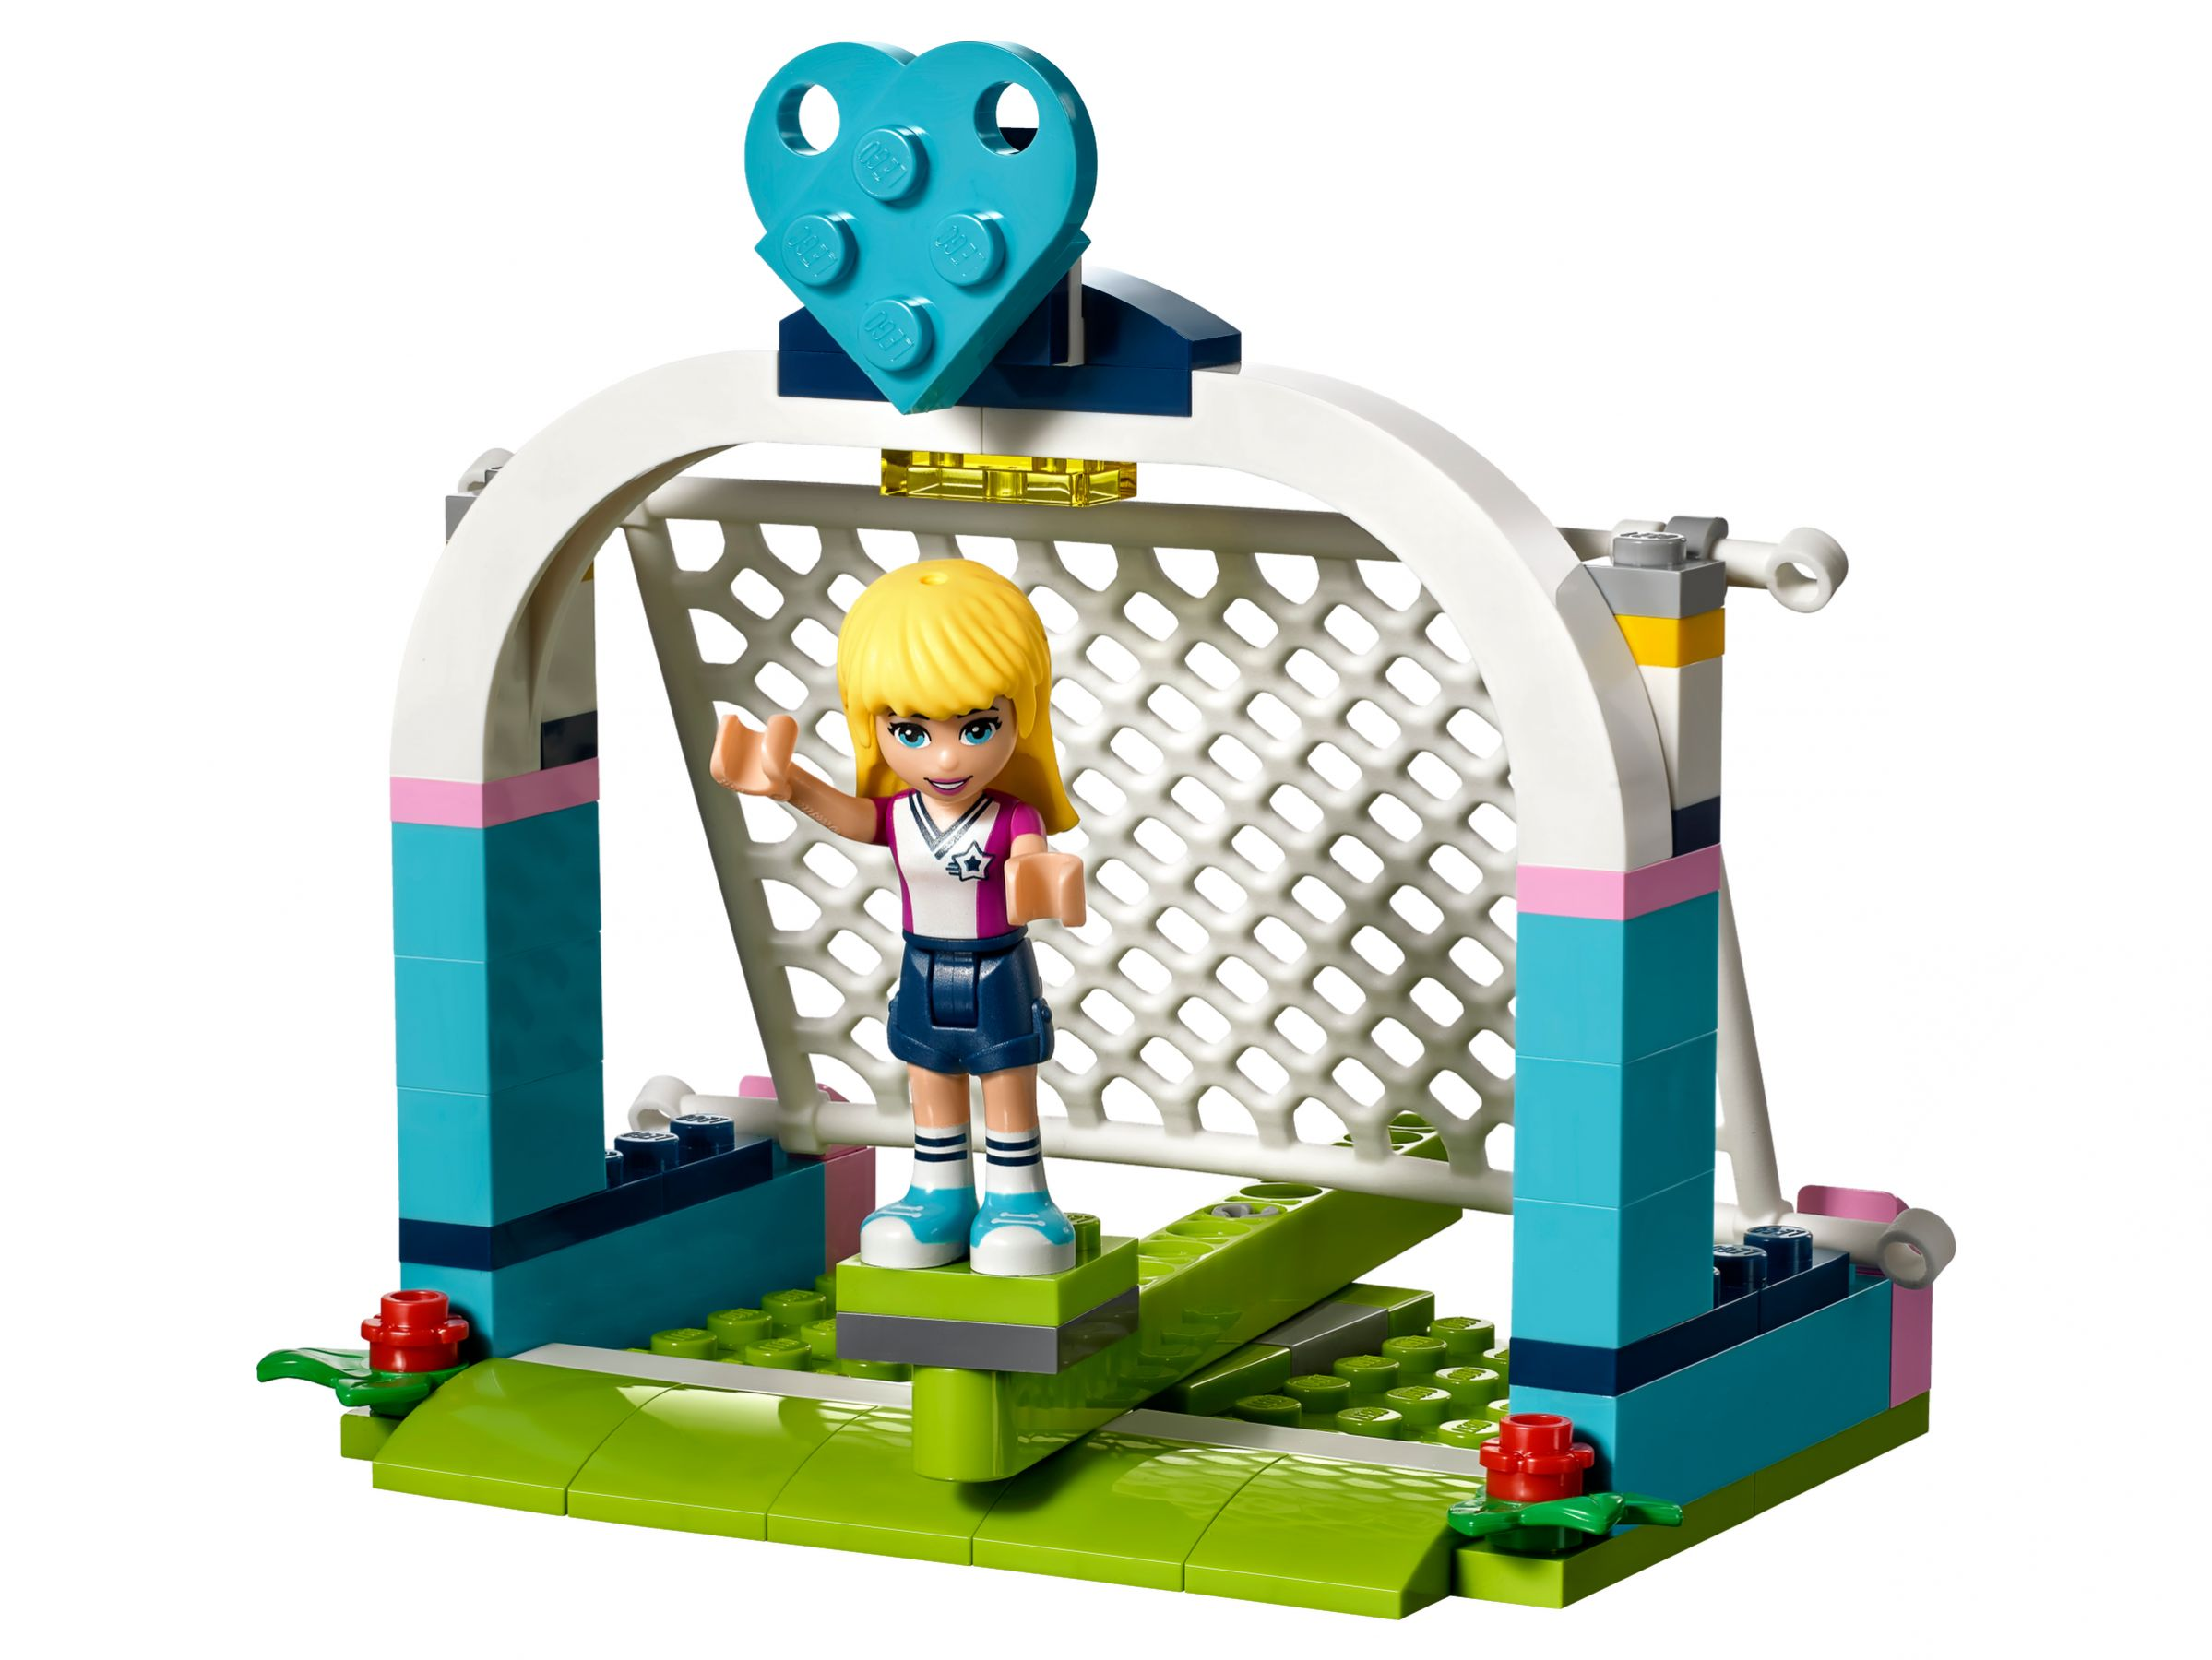 LEGO Friends 41330 Fußballtraining mit Stephanie LEGO_41330_alt3.jpg